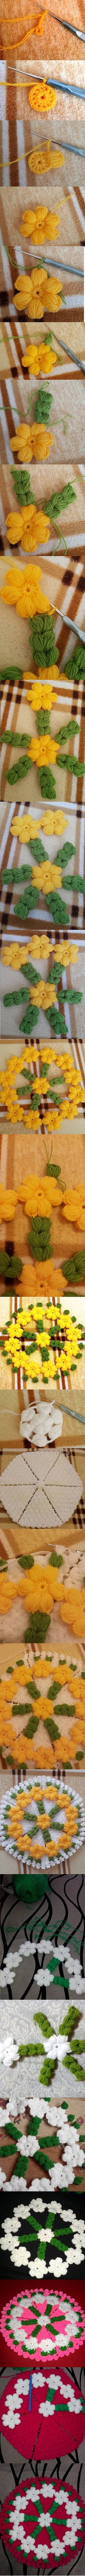 Crochet for Bathroom Puff Stitch Crochet, Crochet Motif, Crochet Doilies, Crochet Flowers, Crochet Stitches, Knit Crochet, Crochet Daisy, Crochet Flower Tutorial, Crochet Symbols